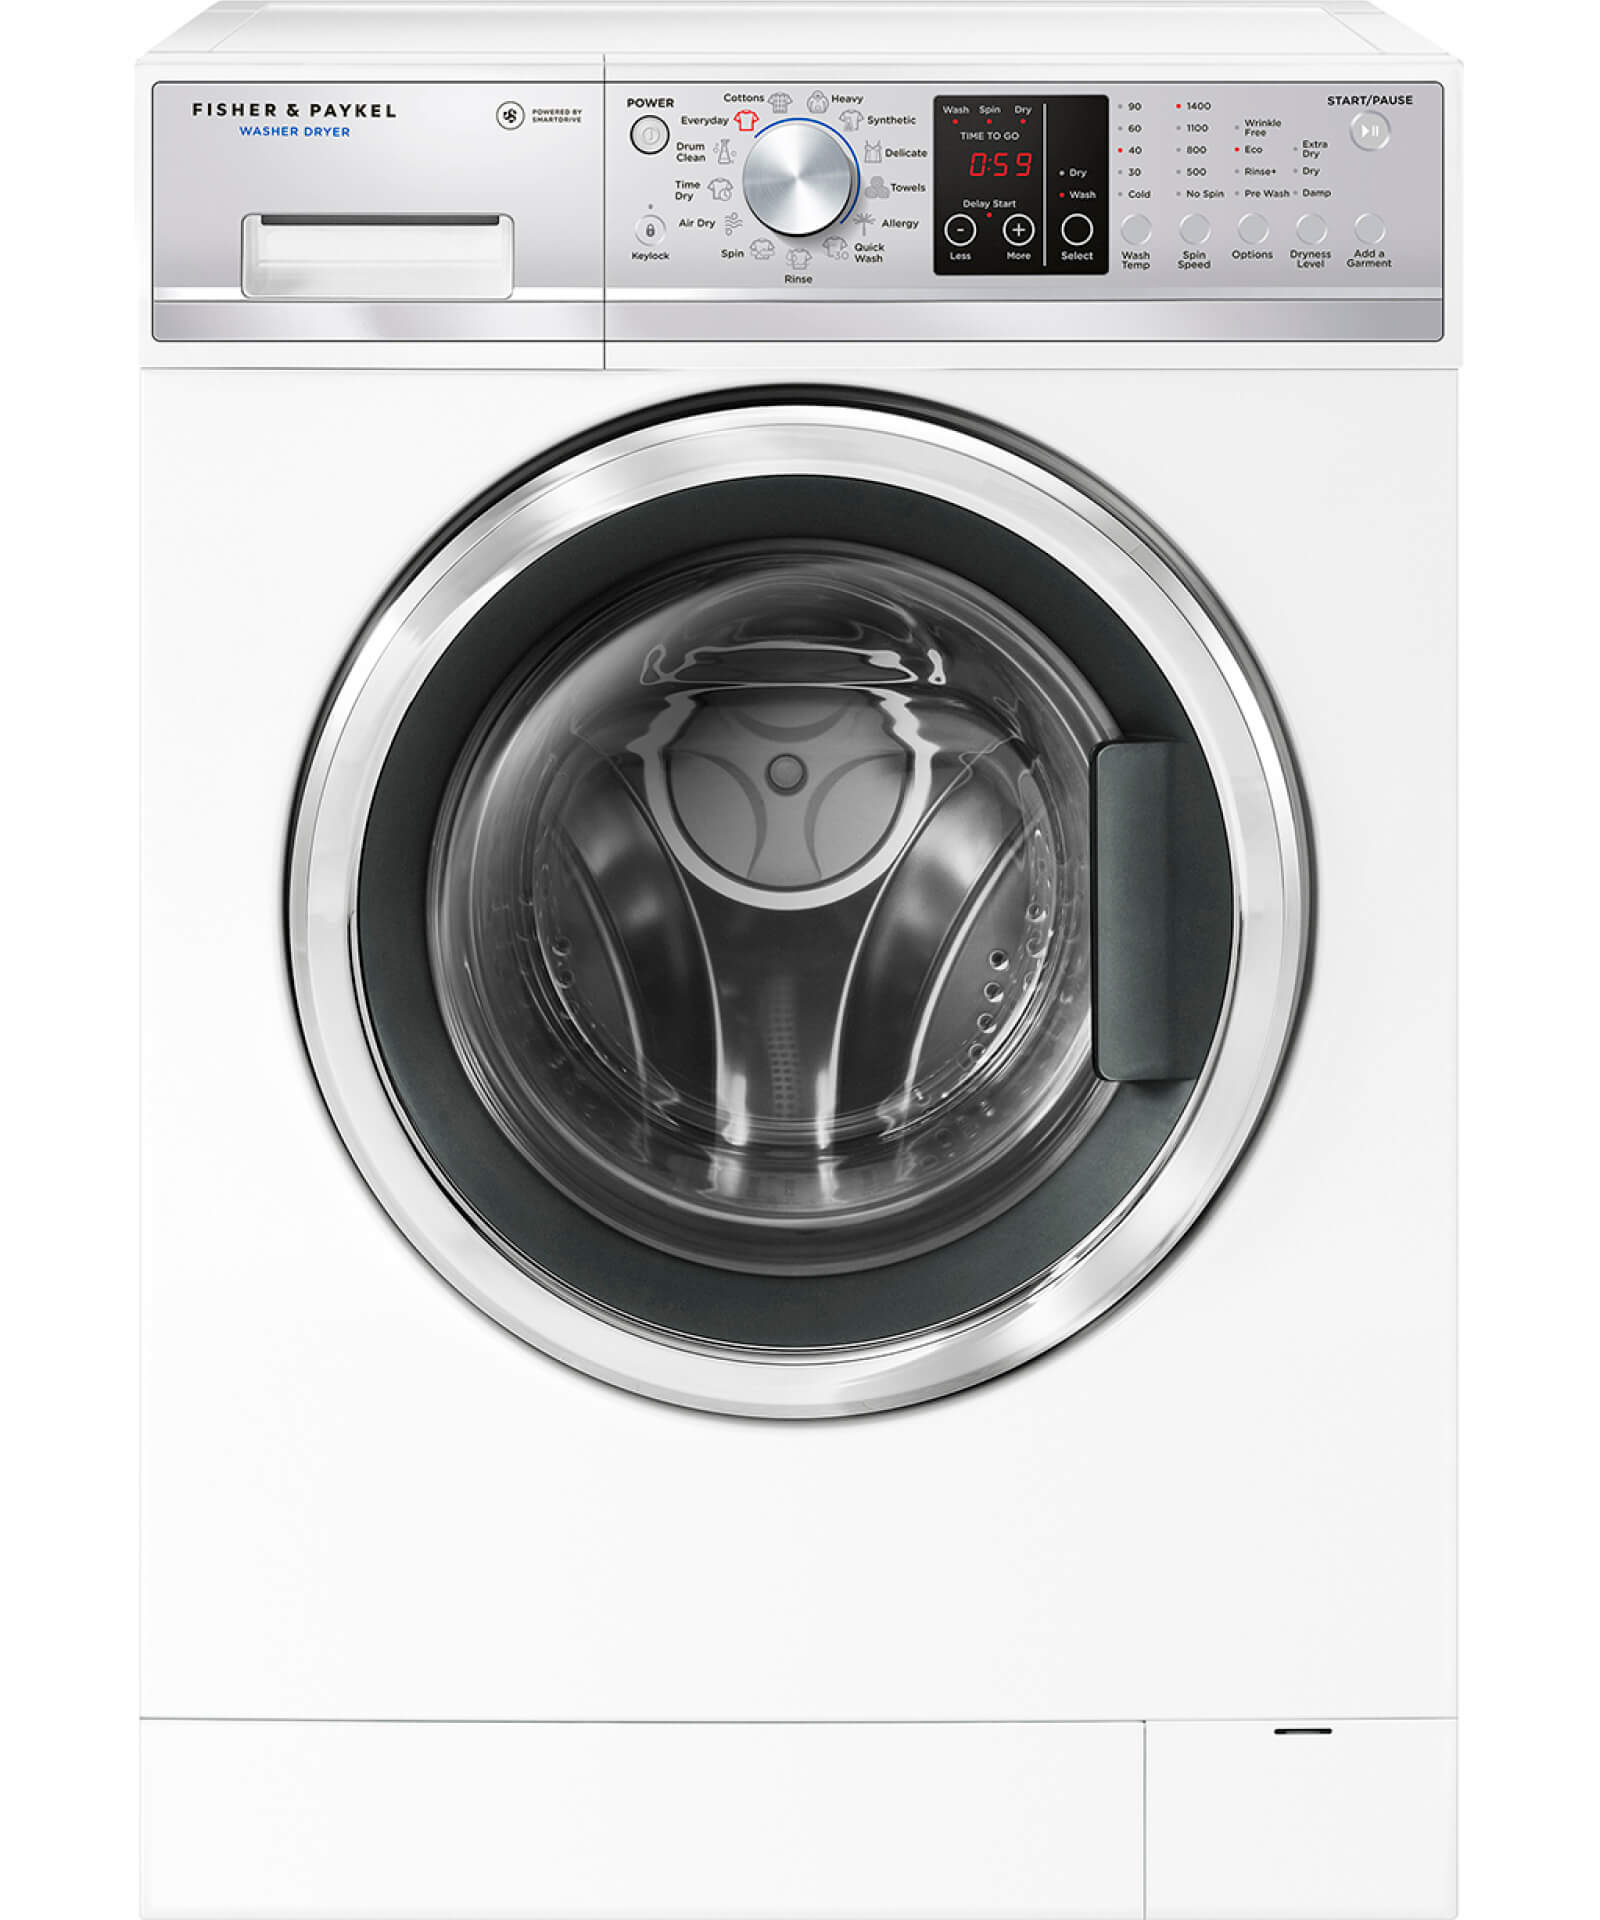 wd8560f1 front load washer dryer combo fisher and paykel au. Black Bedroom Furniture Sets. Home Design Ideas